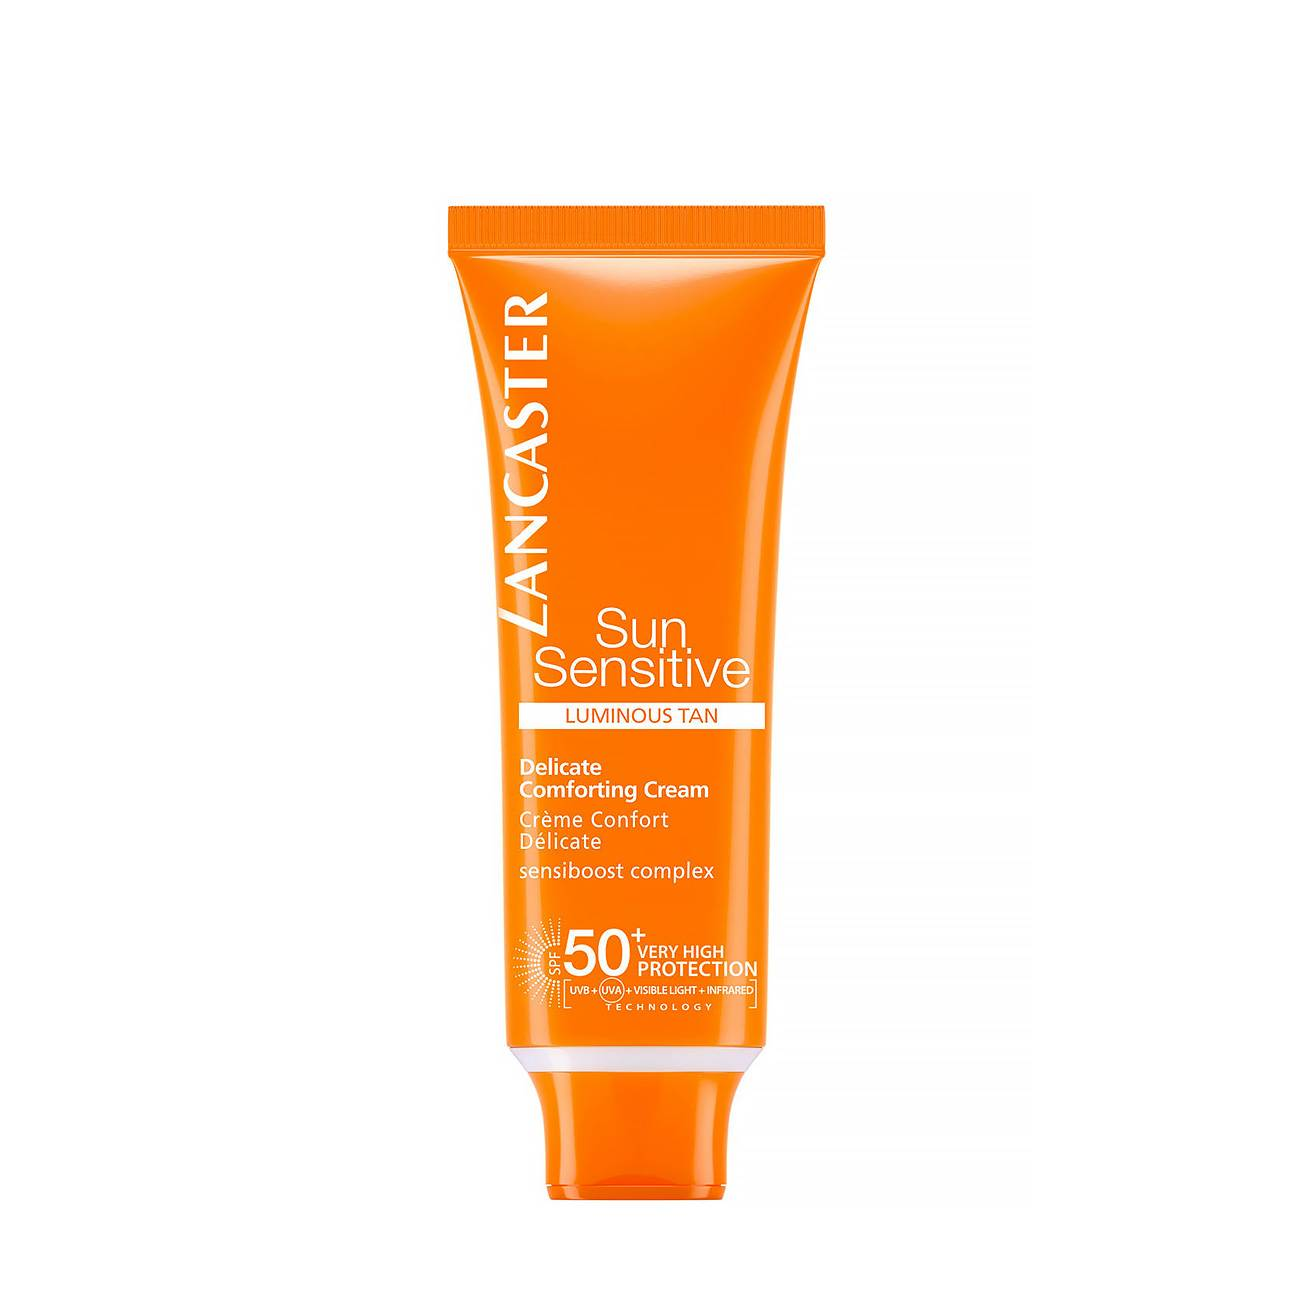 Sun Sensitive Skin Luminous Tan Spf 50 50ml